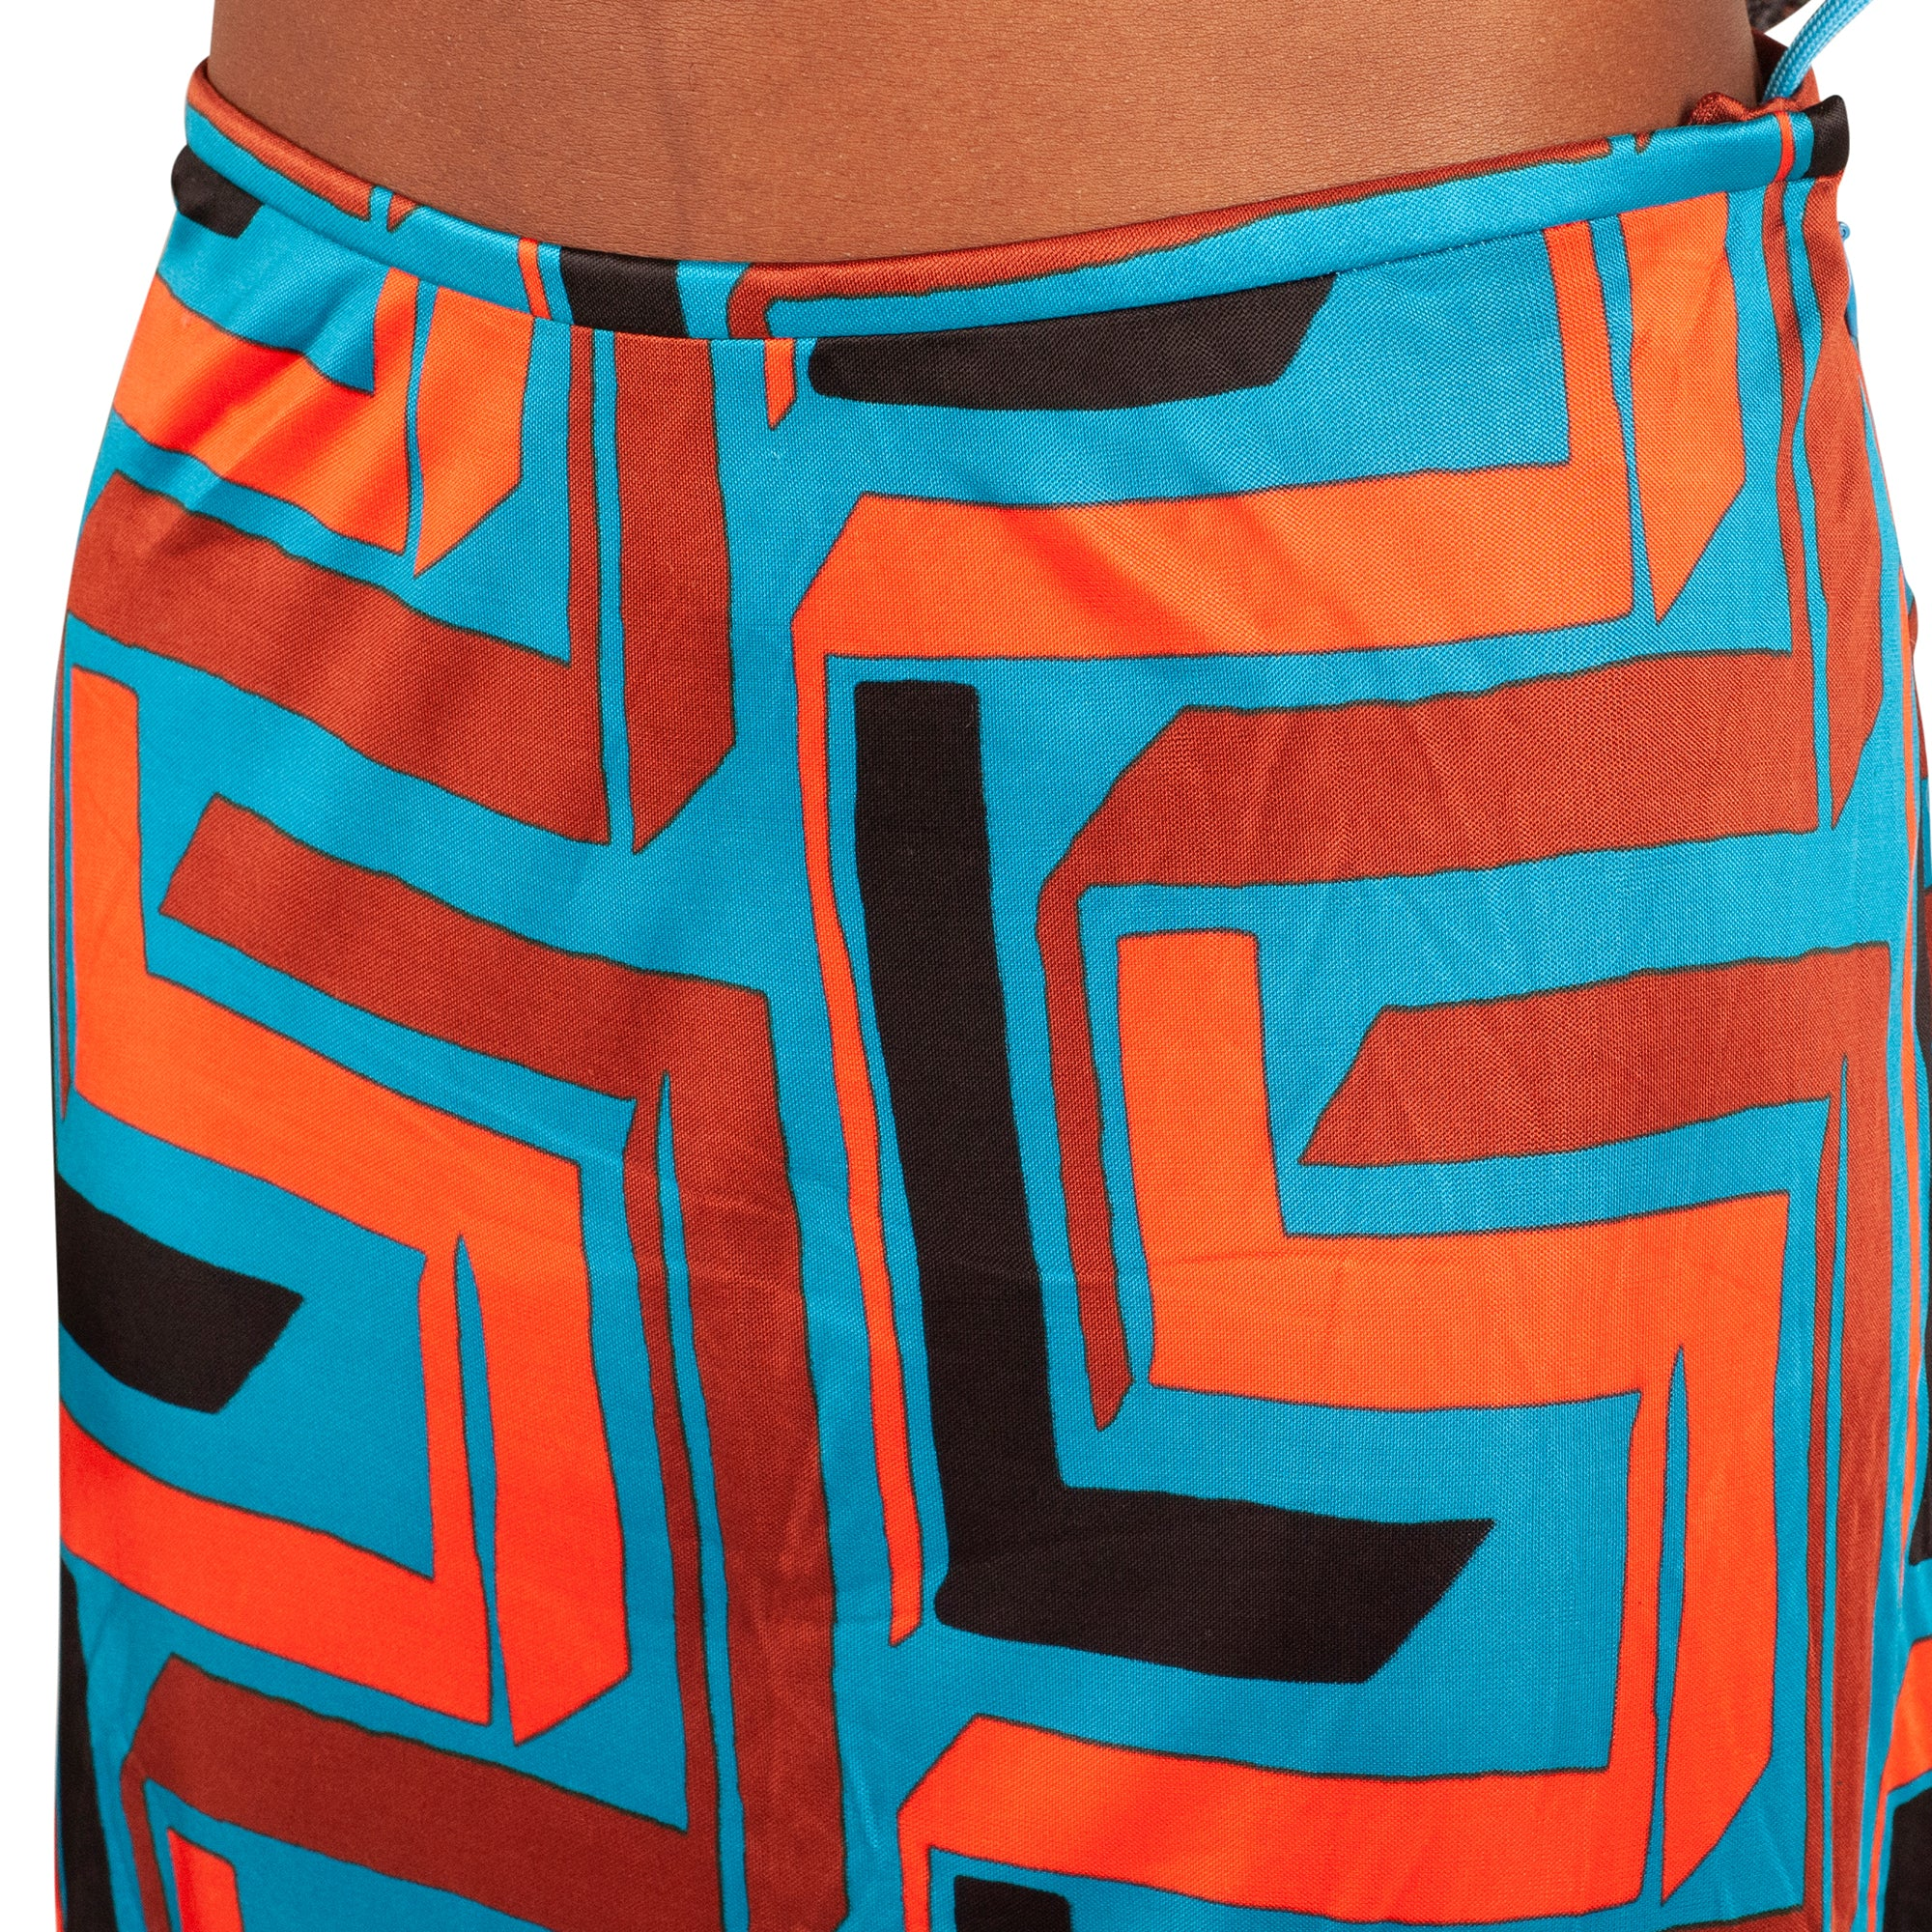 Gianni Versace Skirt (Multi) UK 8